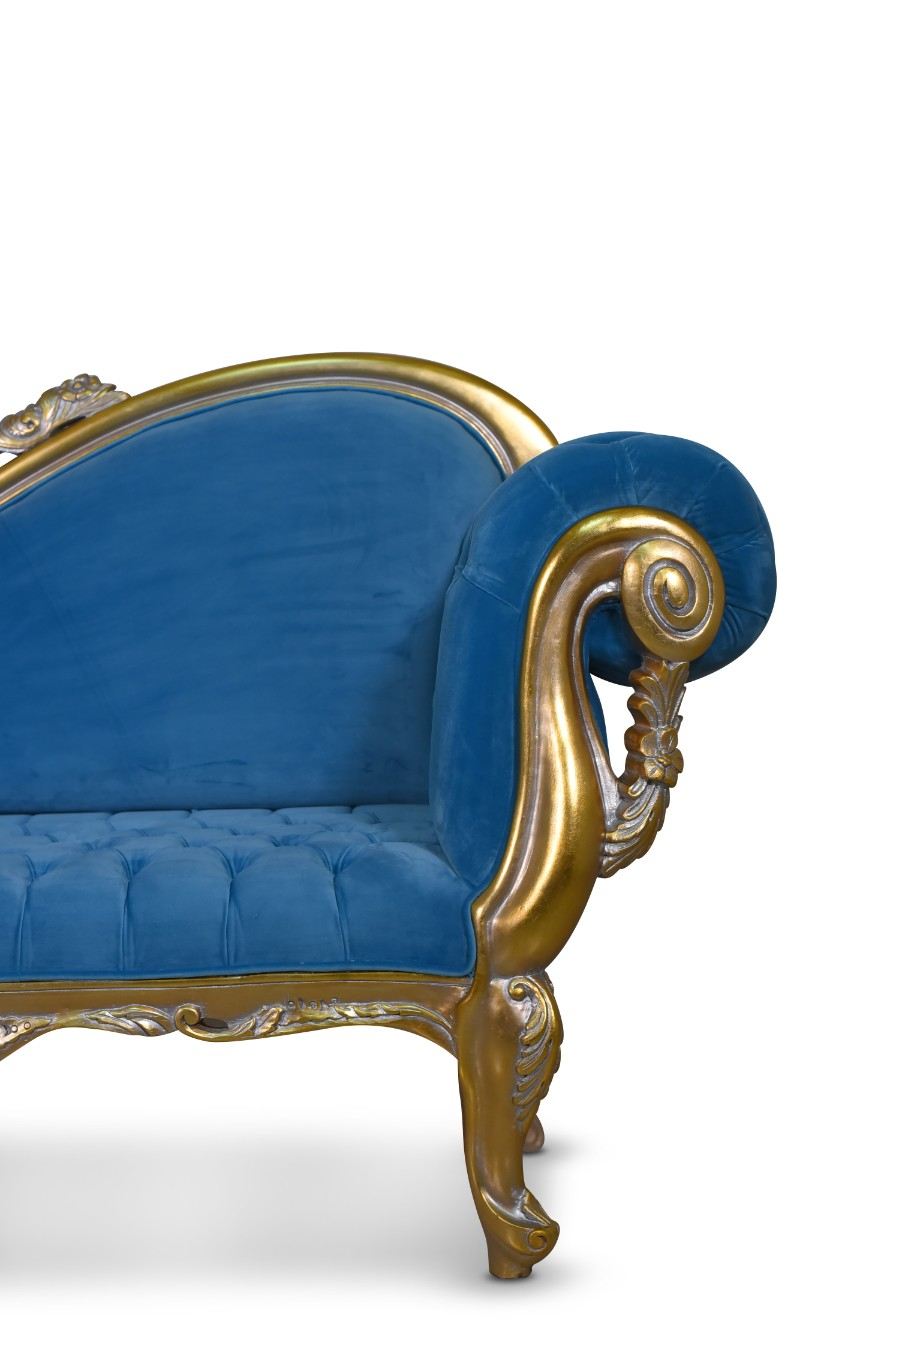 MADE TO ORDER / Citronelle, Victorian Style, Gold leaf , Tufted Blue Velvet, Chaise Lounge